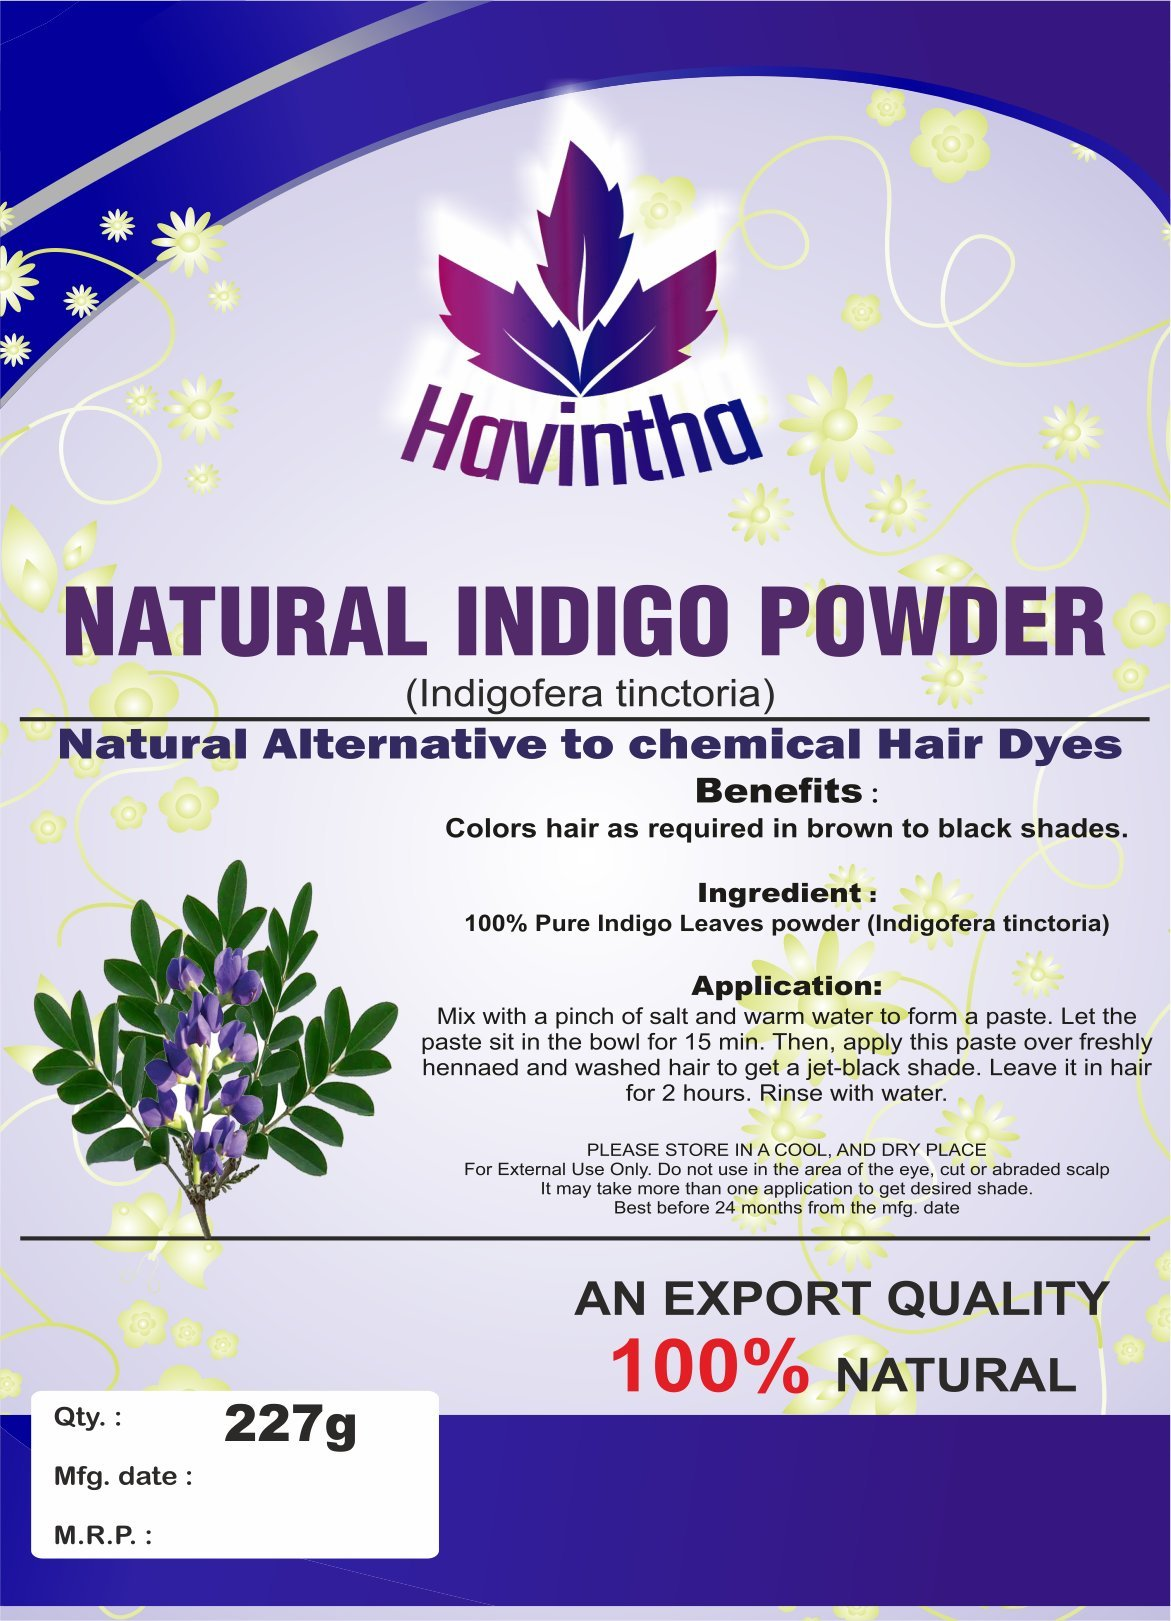 Havintha Natural Indigo Powder for Hair, Indigofera Tinctoria, 227 Grms product image